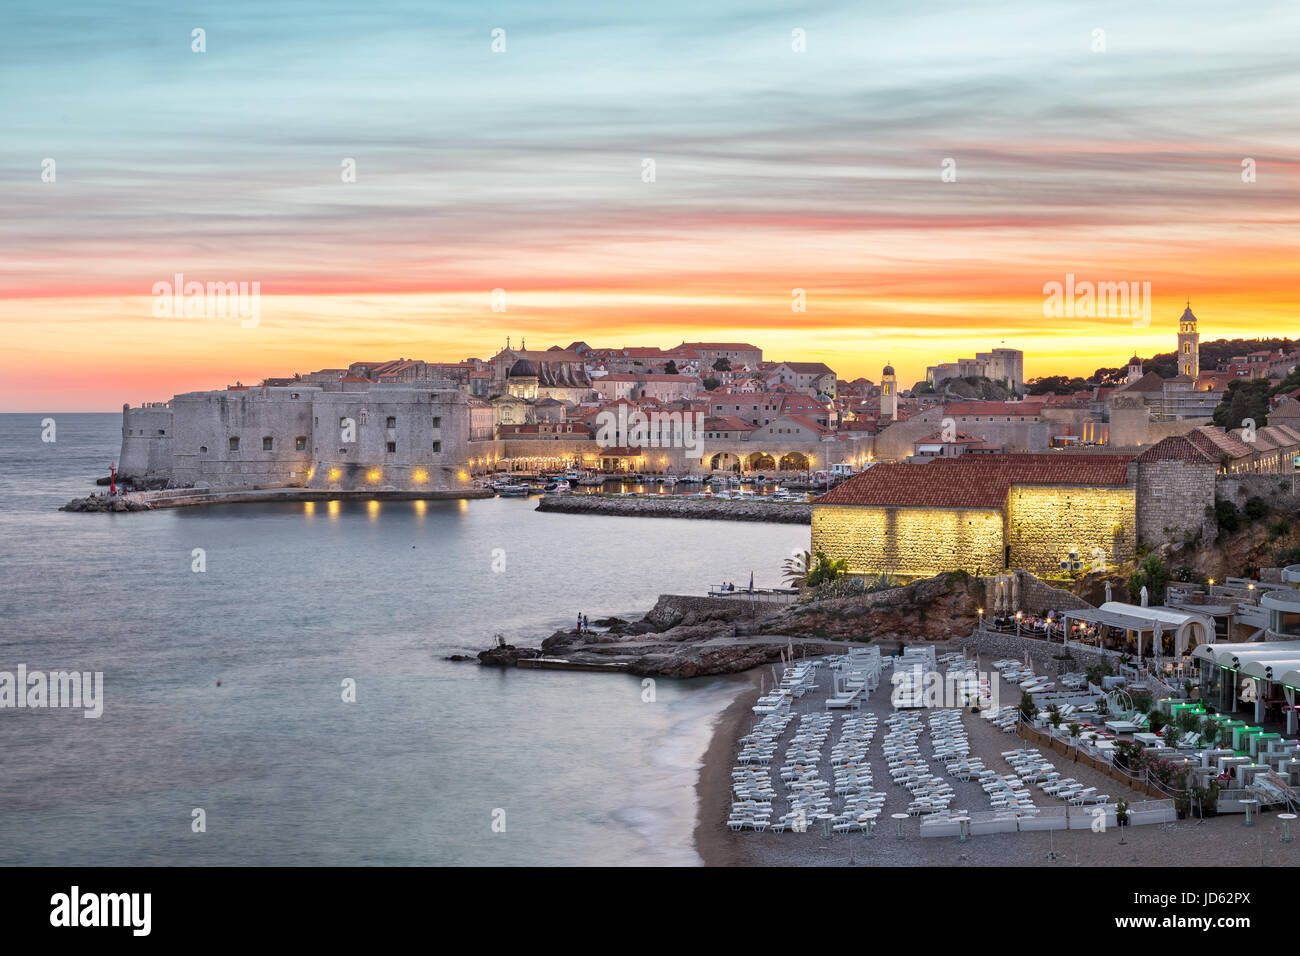 The illuminated old town in Dubrovnik in the evening, Croatia - Stock Image